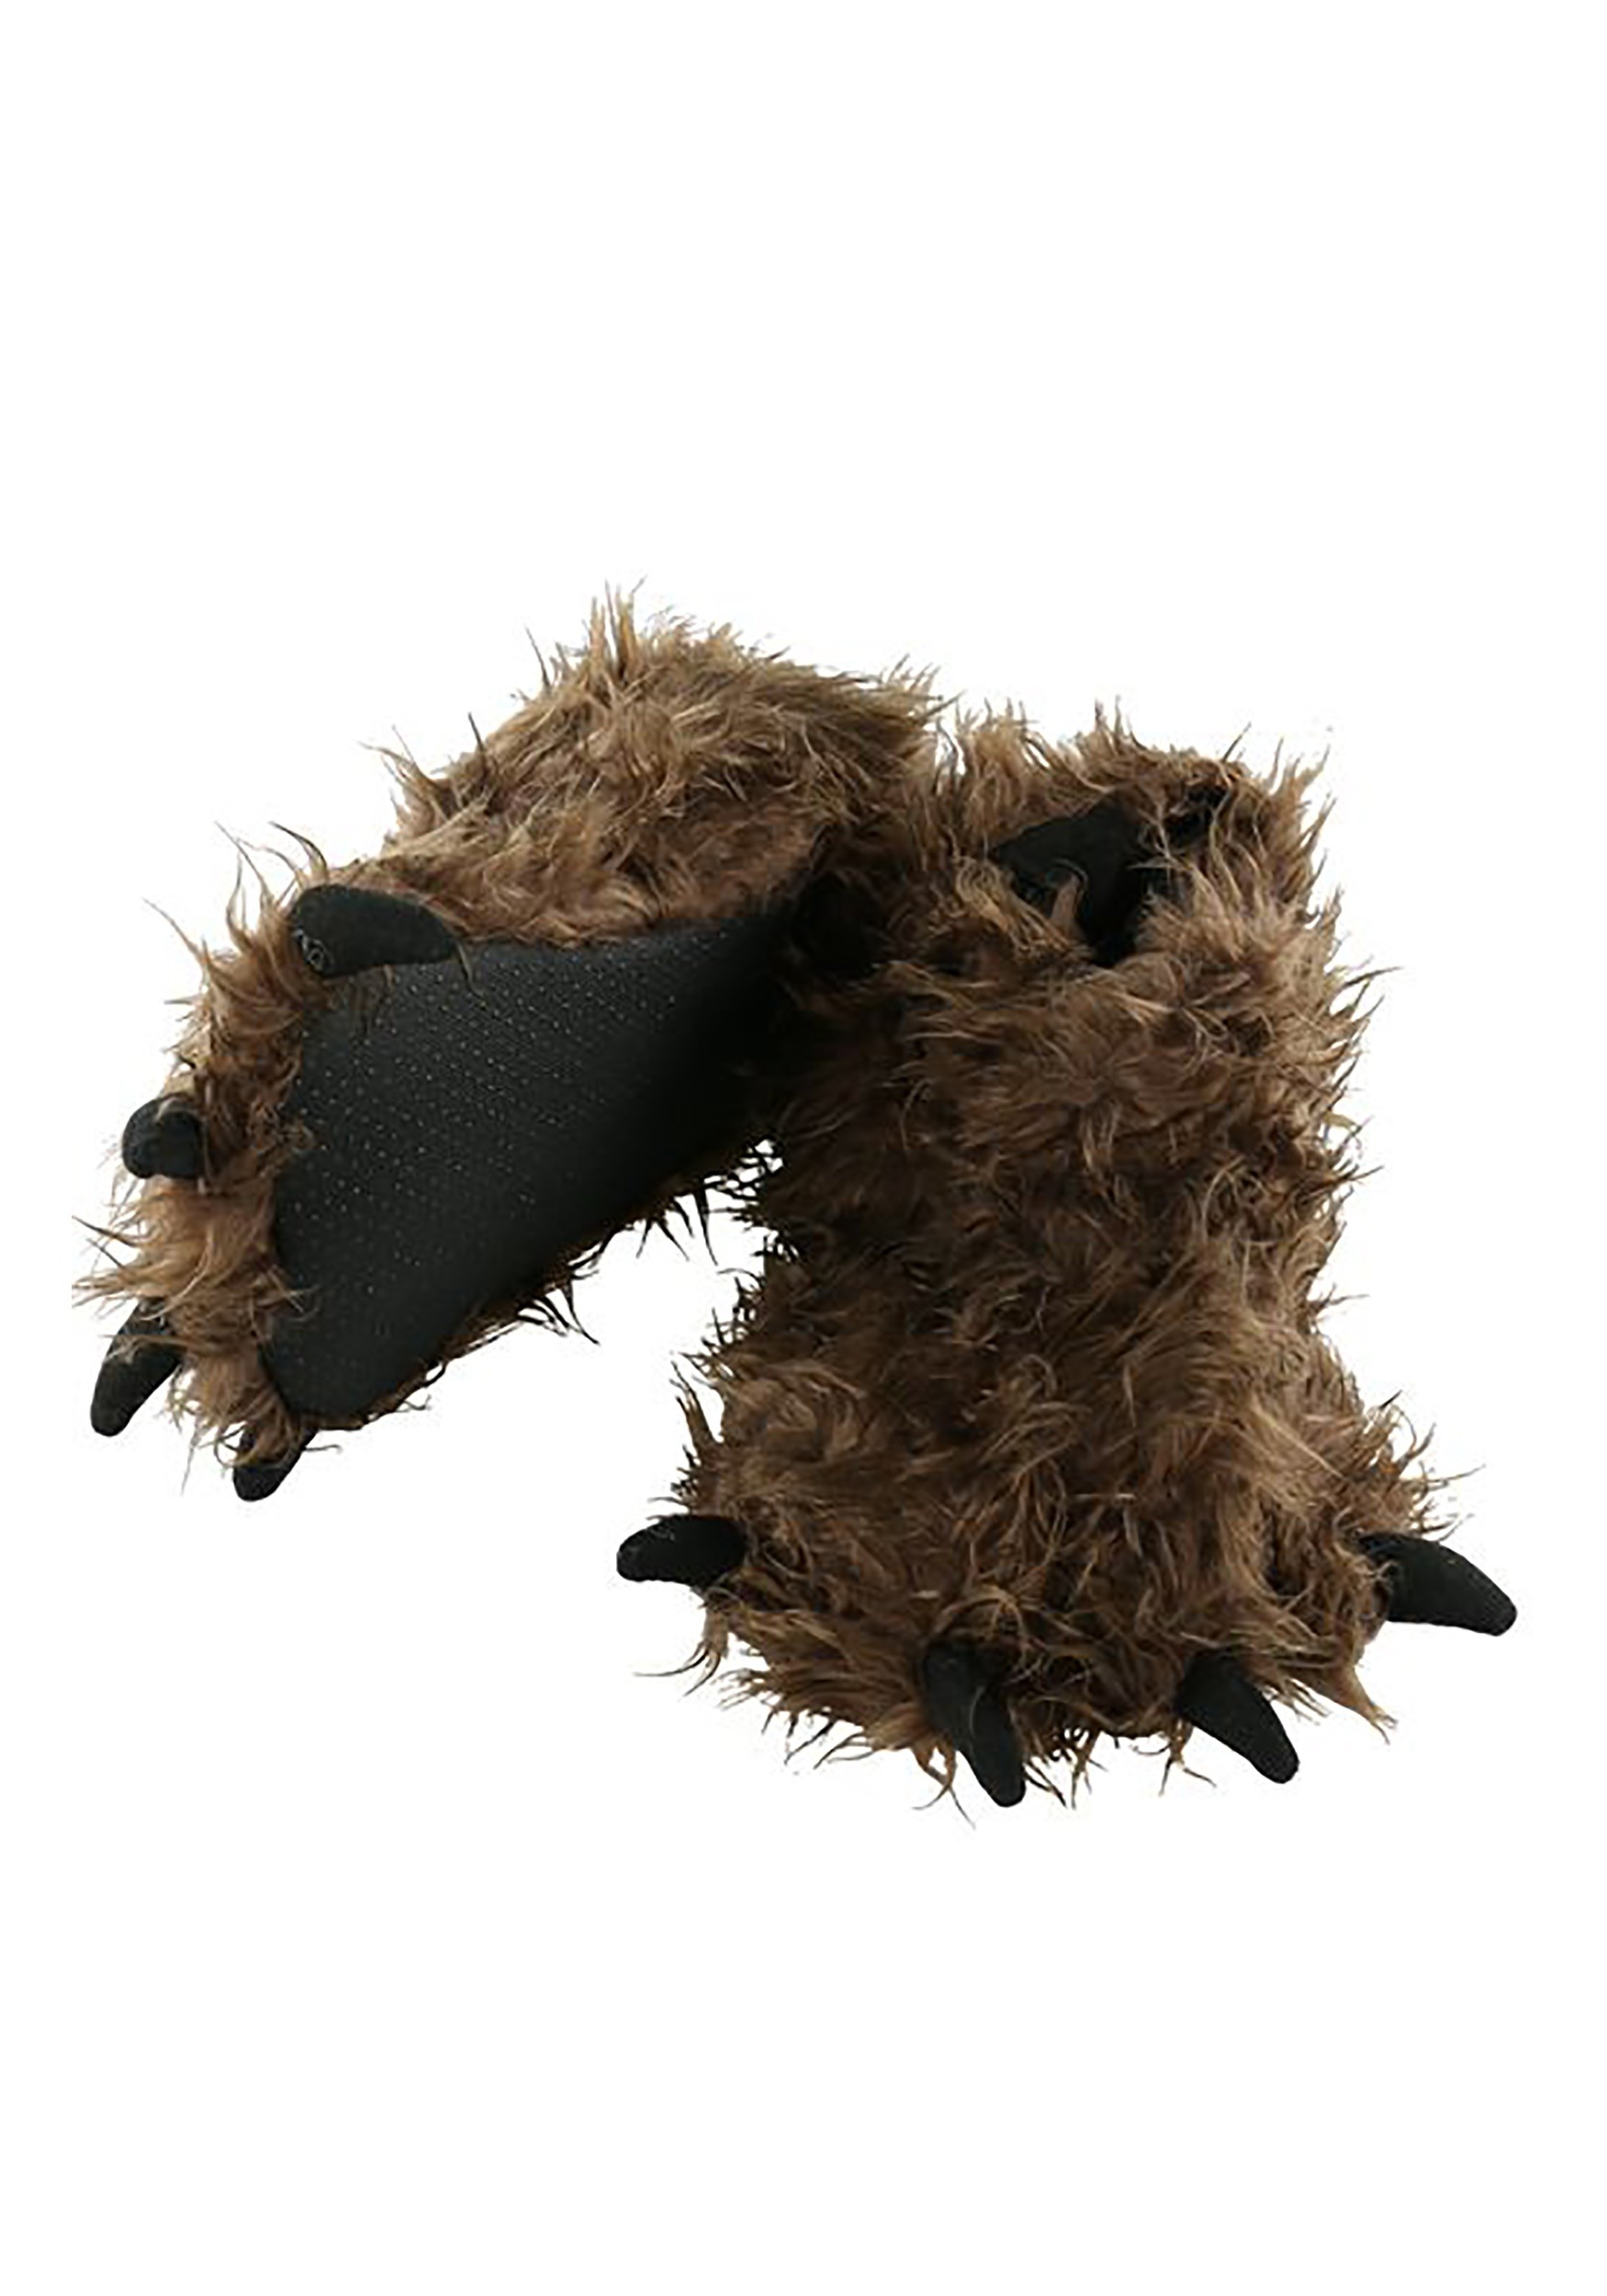 d83a2674c Bigfoot Slippers | | Bigfoot Gifts & Toys